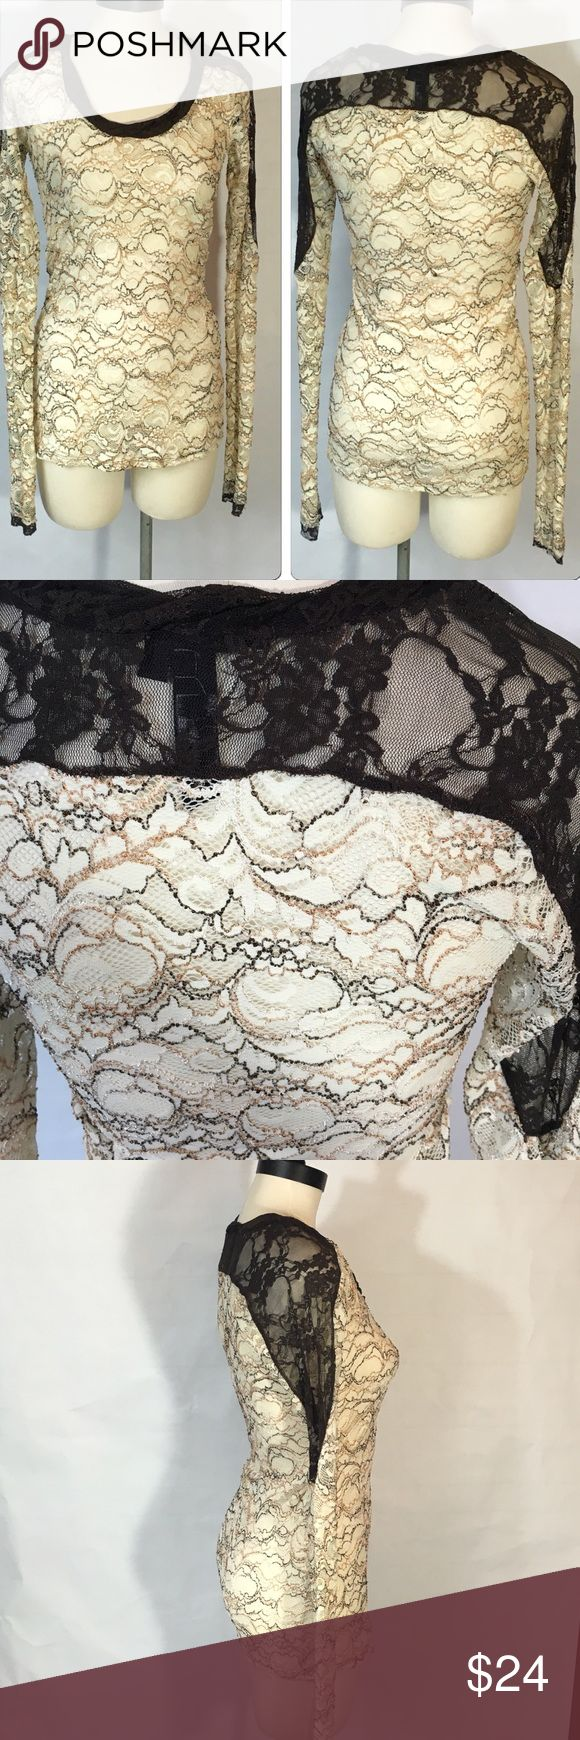 Bke Boutique Lace Top Buckle BKE Boutique  All over stretch Lace Top  Cream/Brown  Size L  EUC  Extra long sleeves Very fitted  The cream is a thicker lace  The brown is a thinner sheer lace.  Seriously gorgeous on!  I layered with a brown Cami underneath To make the cream details pop! 😍 BKE Tops Blouses